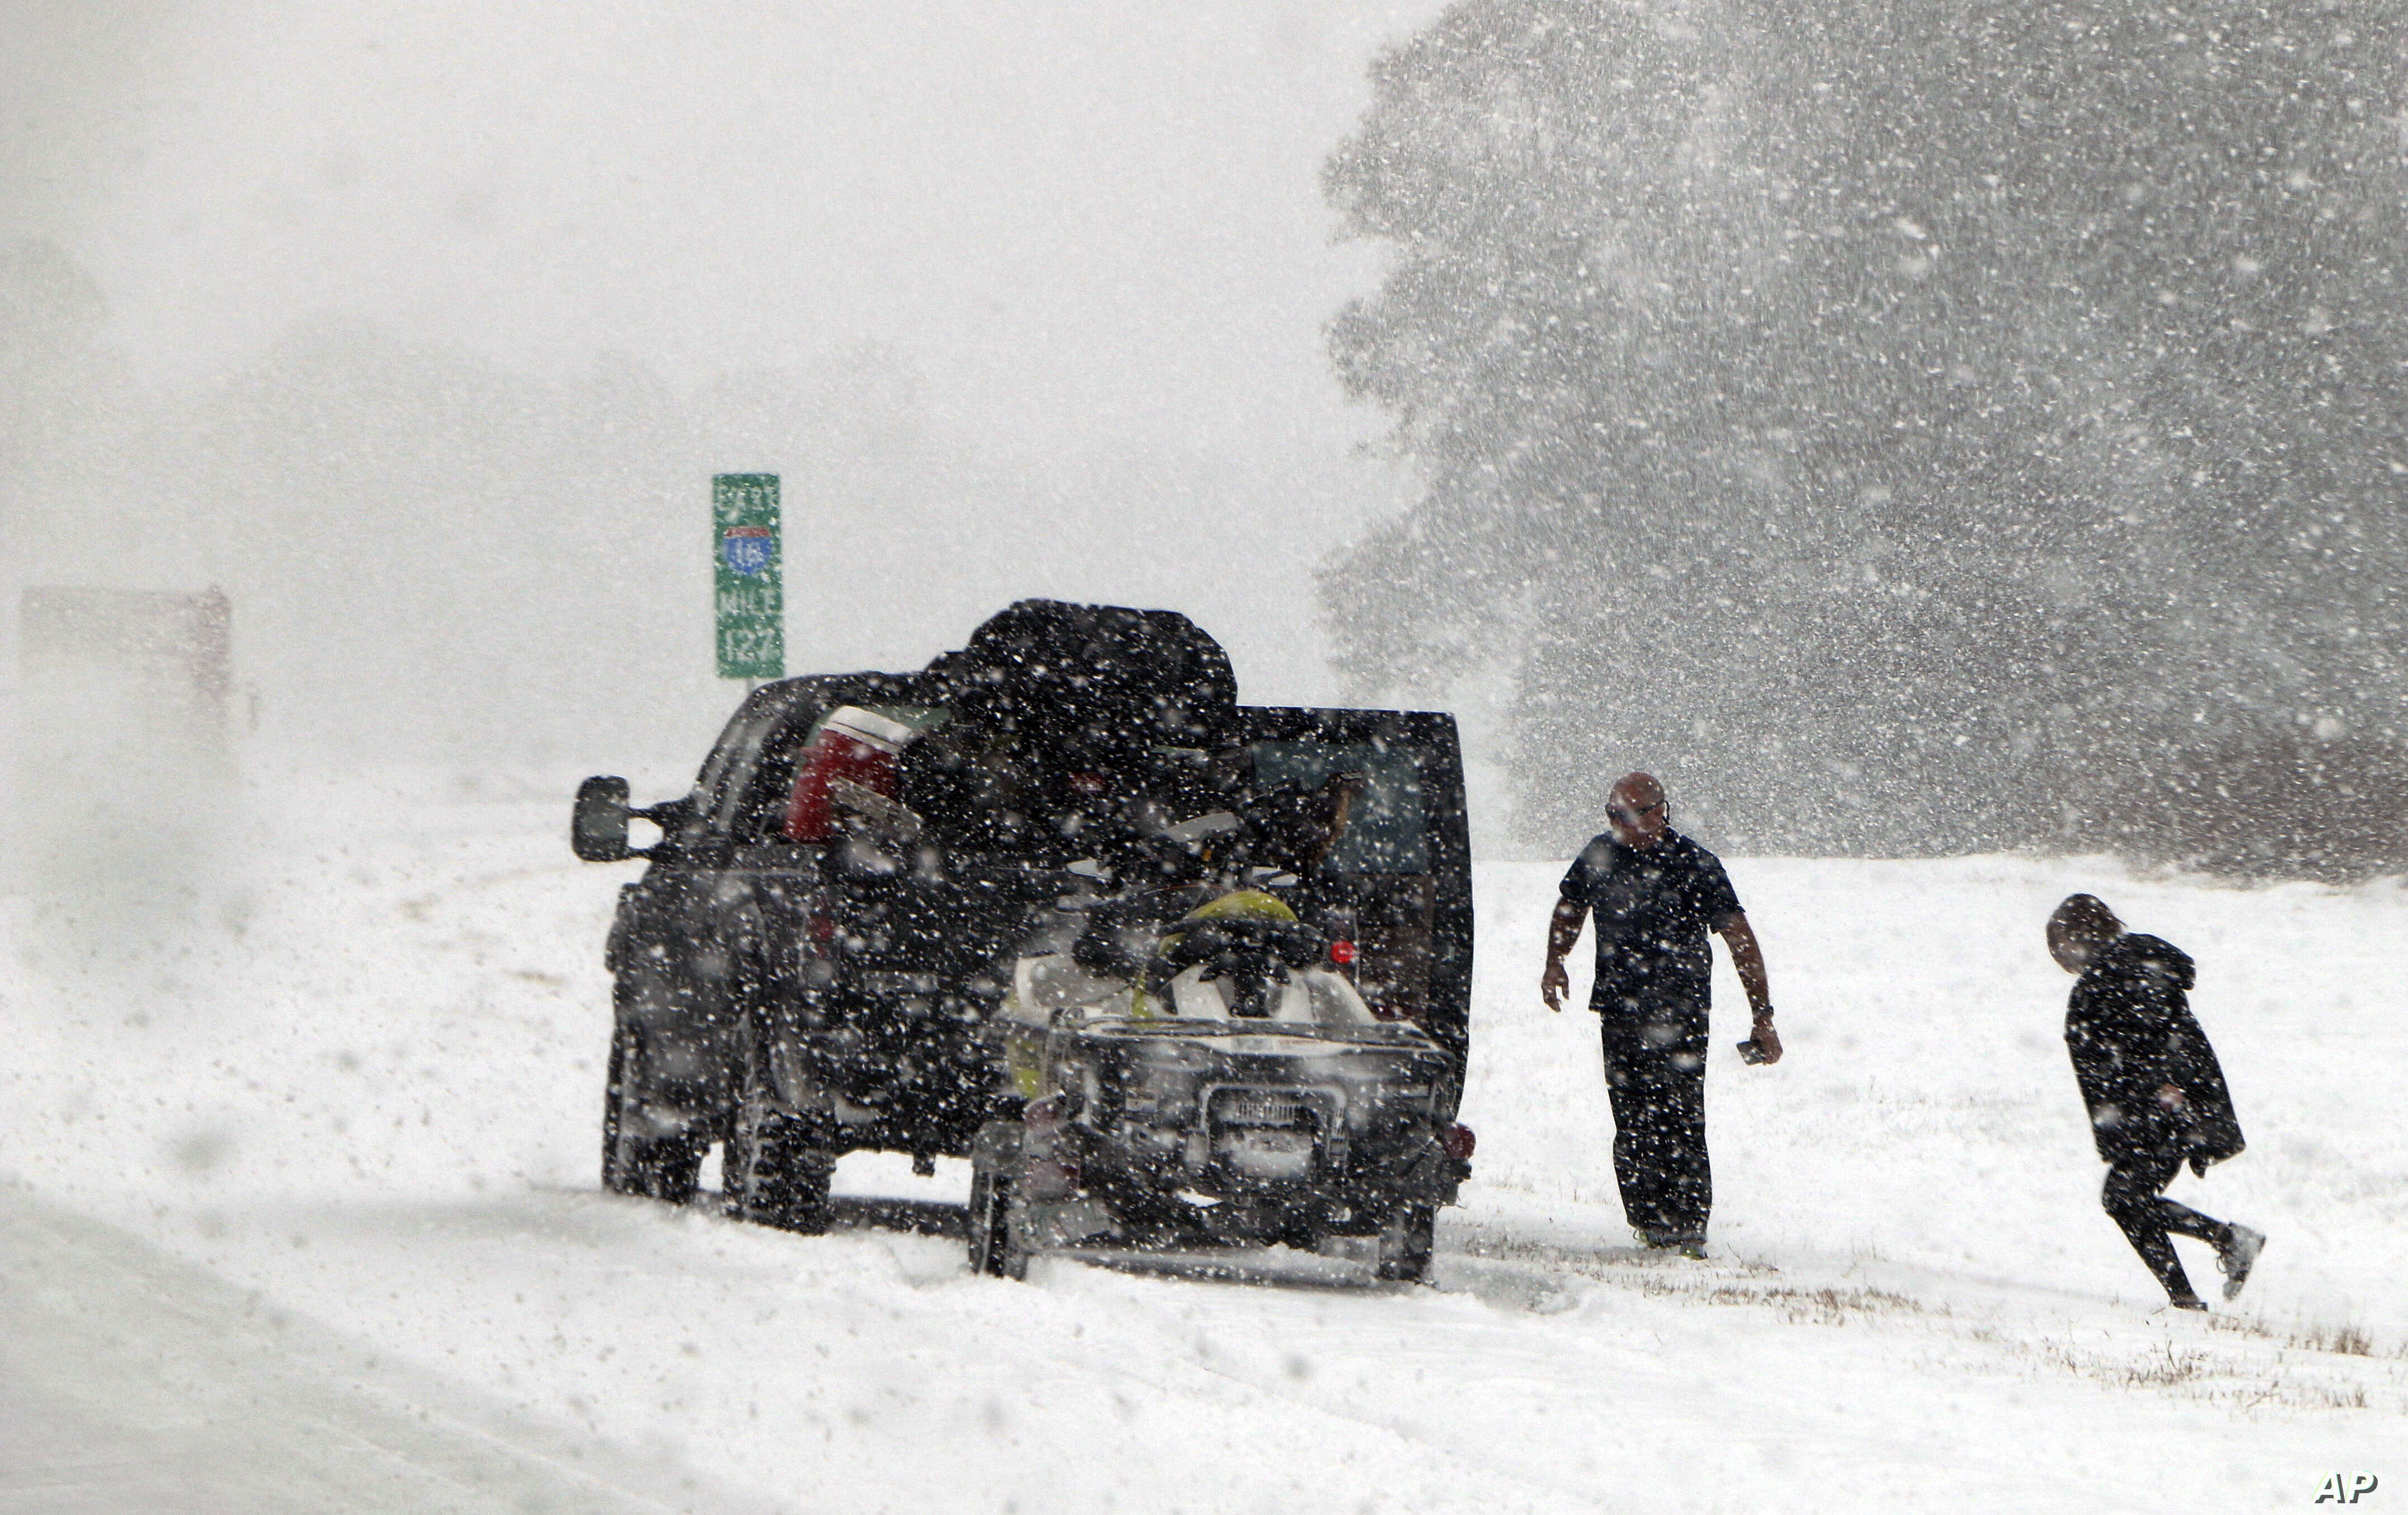 People attend to their vehicle on Interstate 26, near Savannah, Ga., Jan. 3, 2018. A brutal winter storm dumped snow in Tallahassee, Fla., Wednesday for the first time in nearly three decades before slogging up the Atlantic coast.